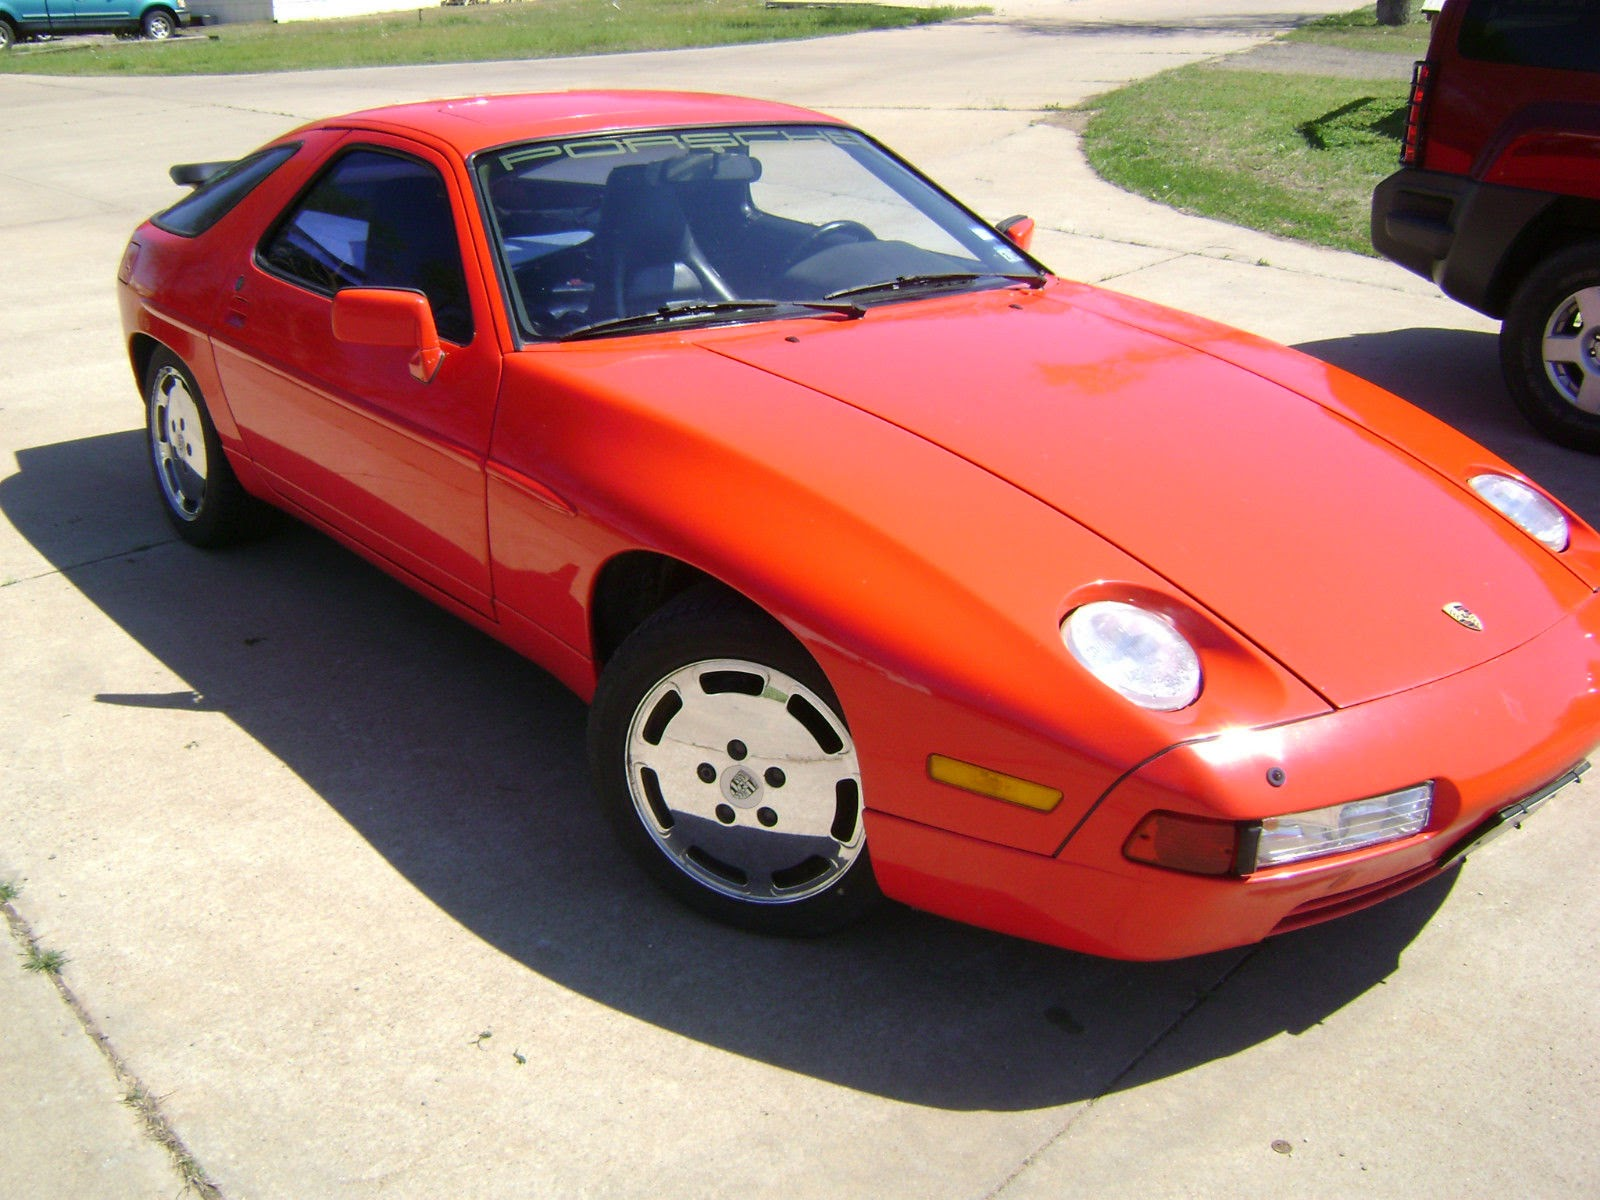 Porsche 928 with chevy engine for sale